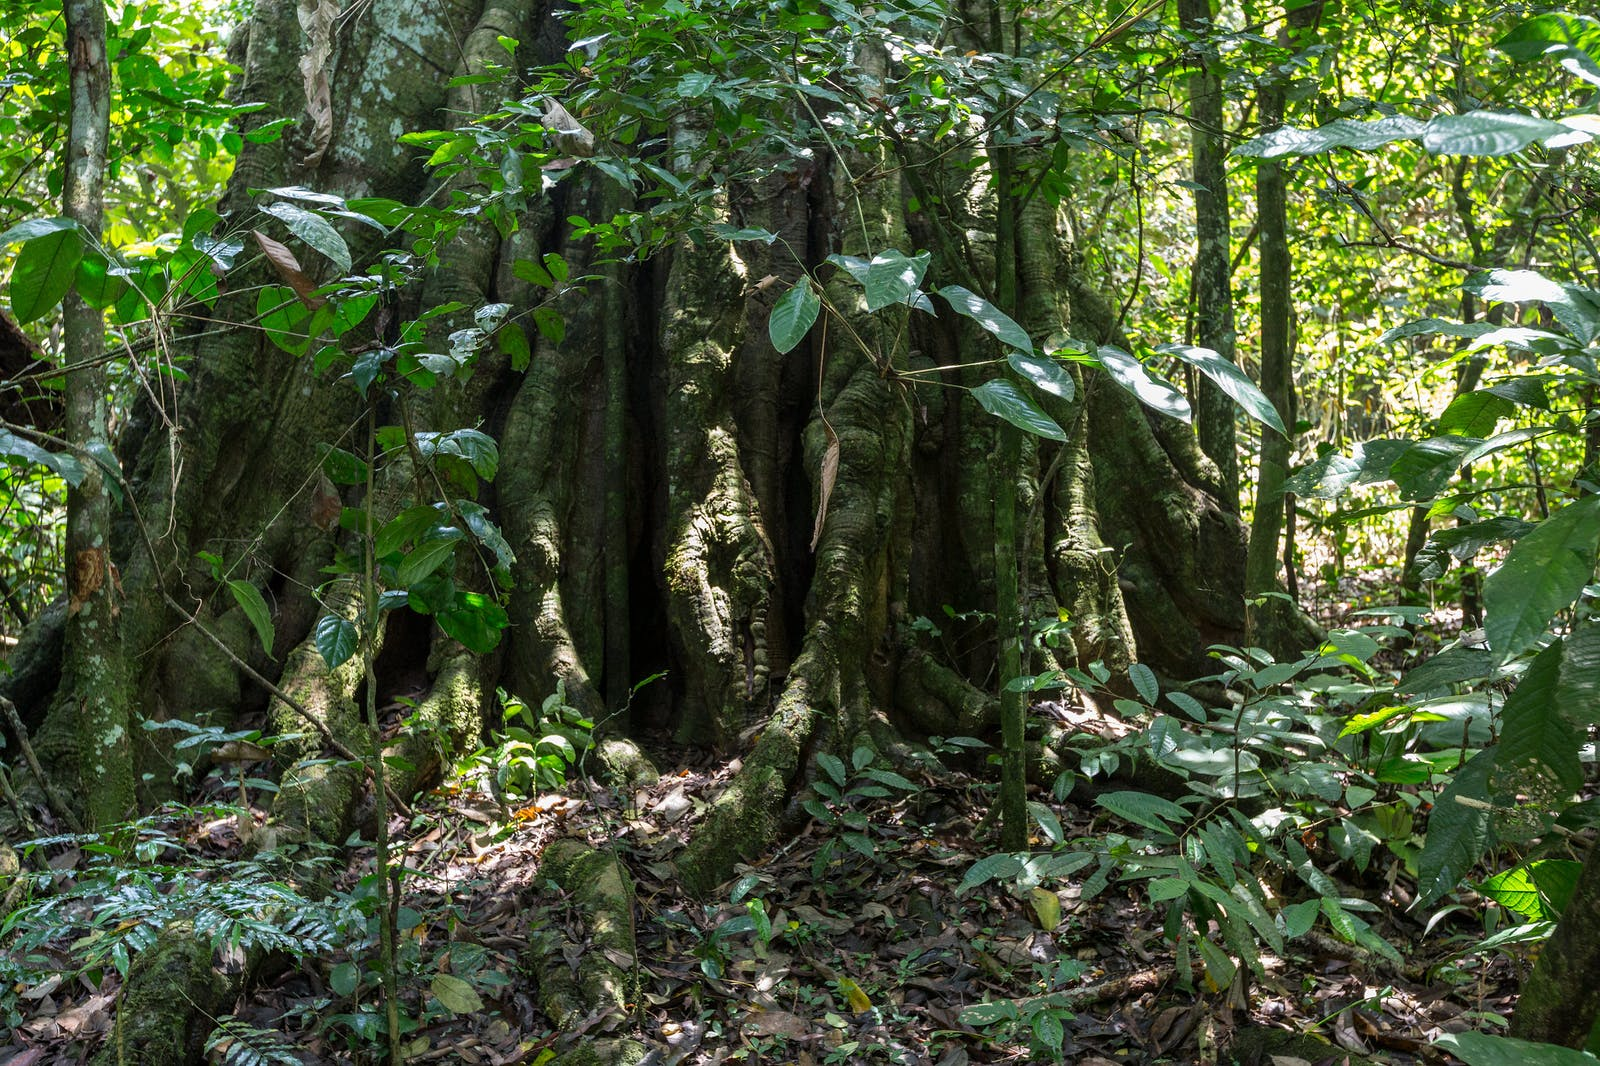 Northwest Congolian Lowland Forests